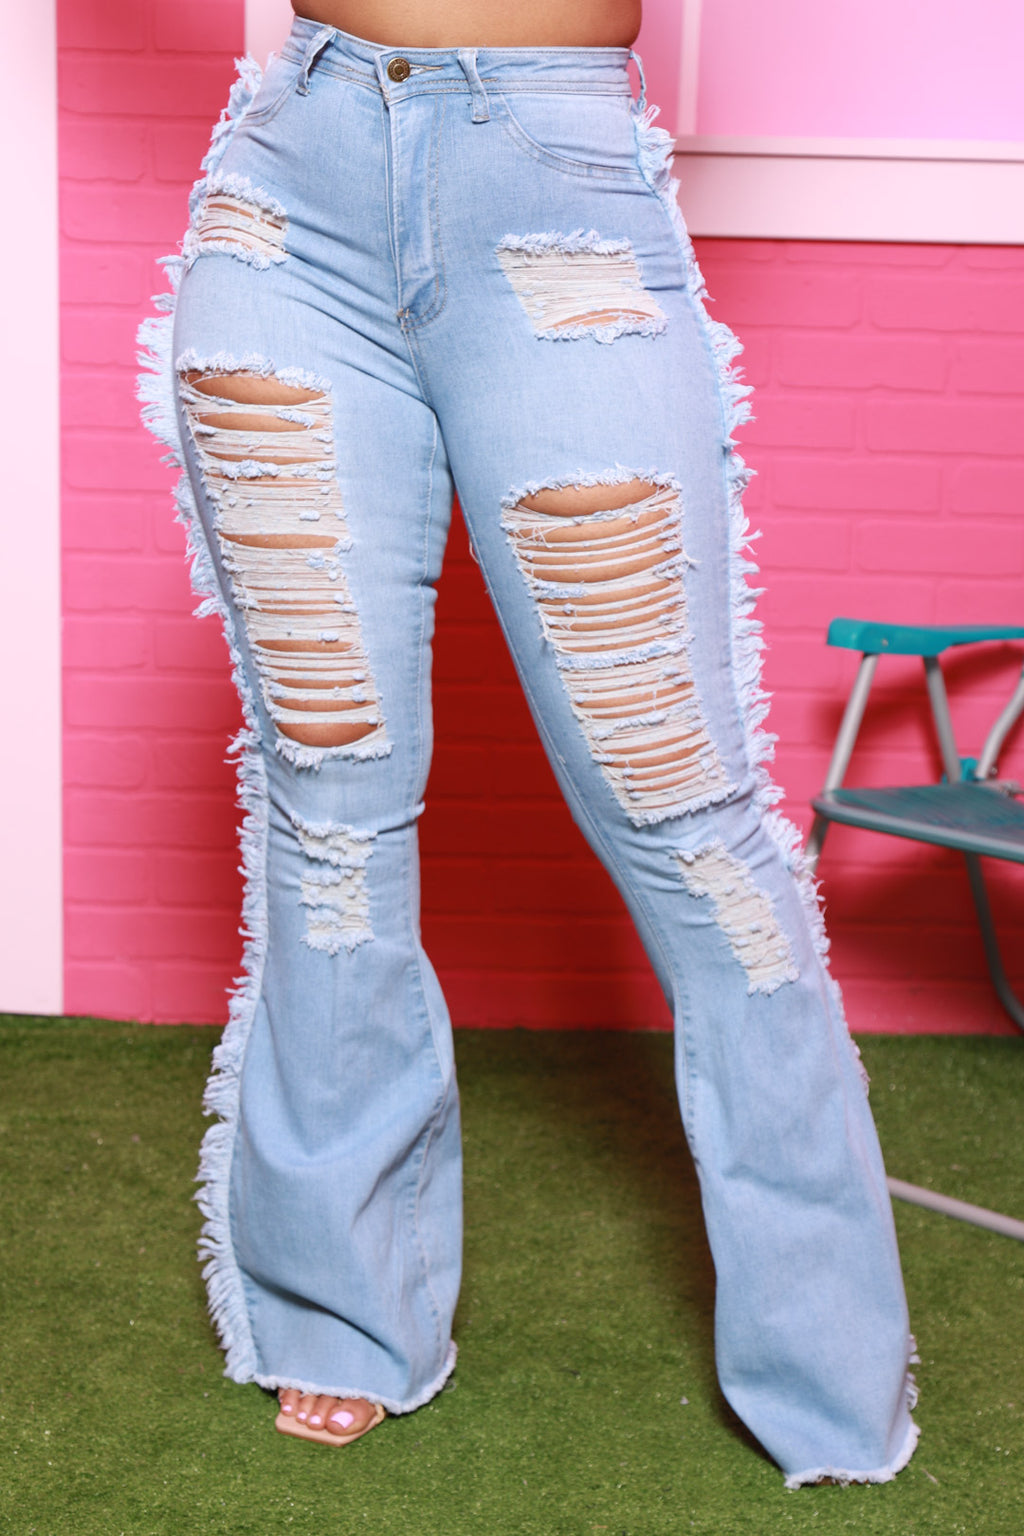 Fate High Rise Distressed Flare Jeans - Light Wash - Swank A Posh